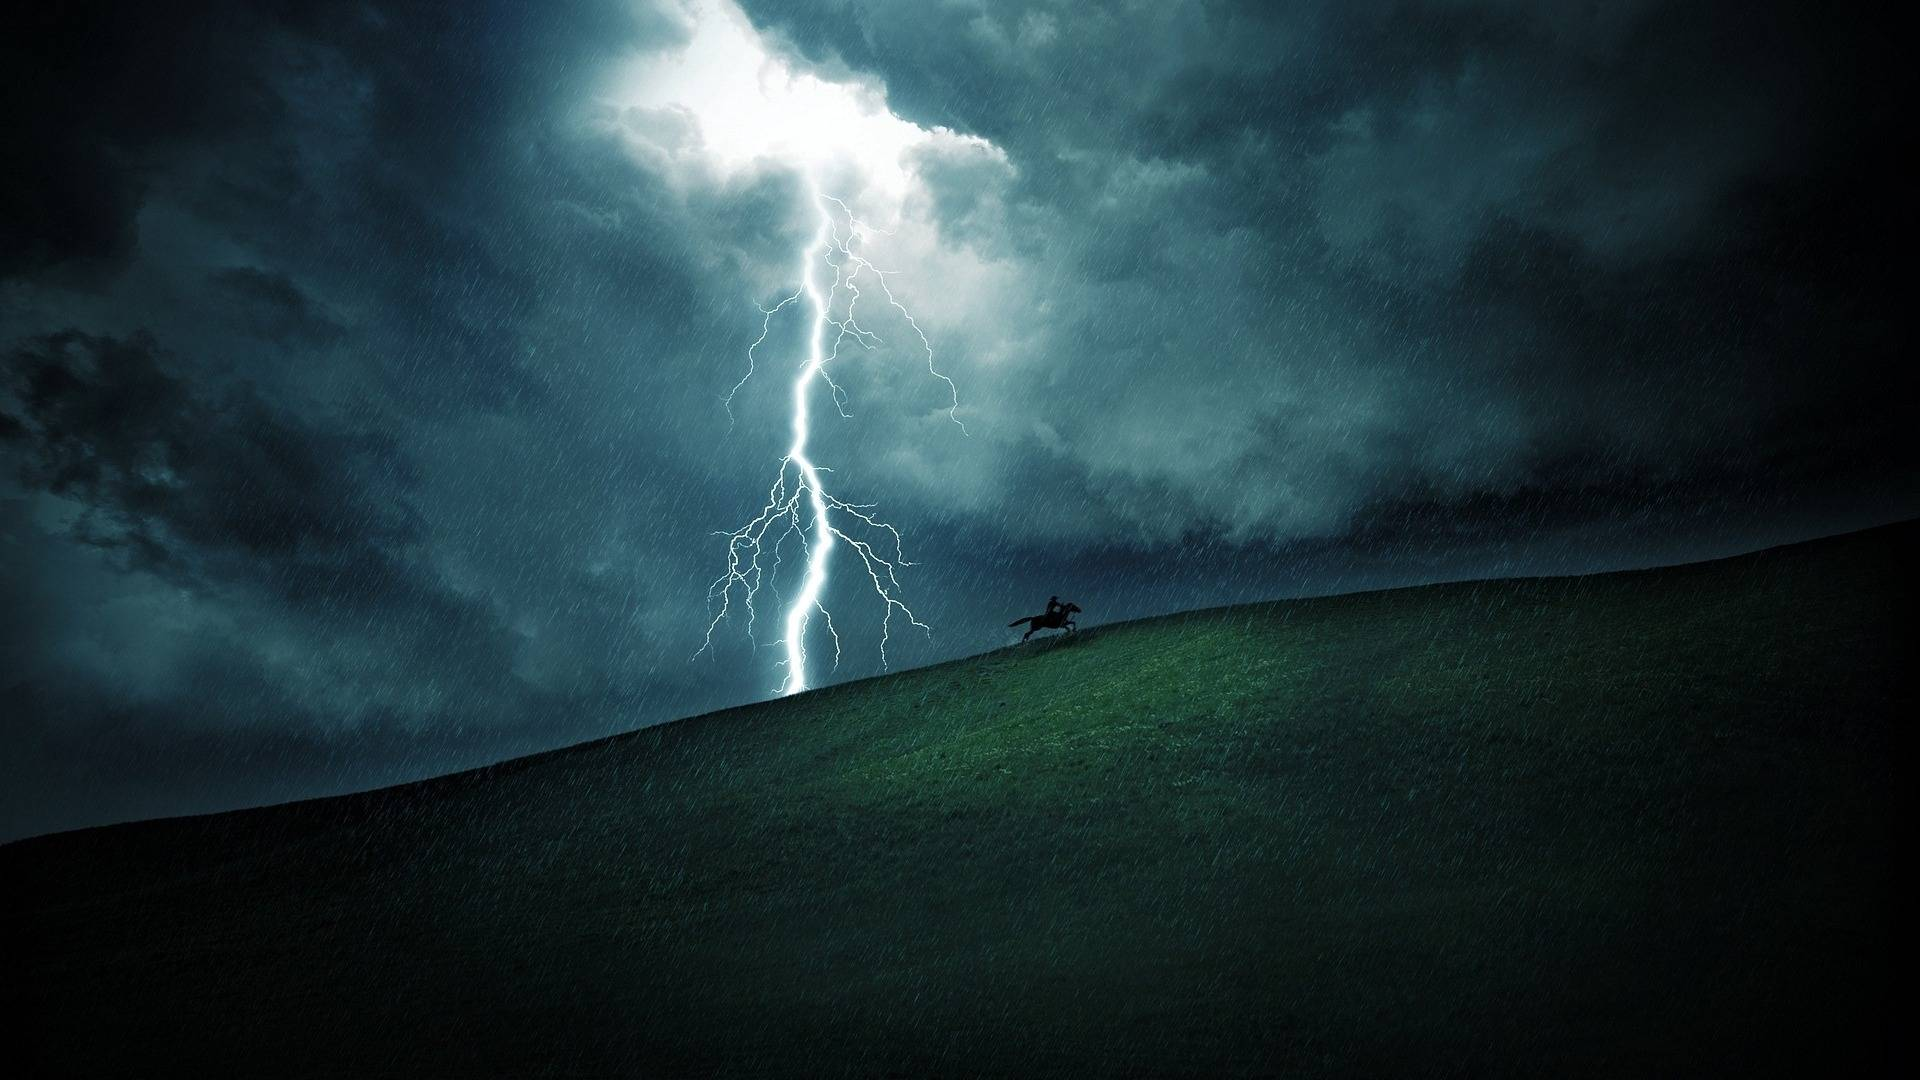 Thunderstorms Wallpaper